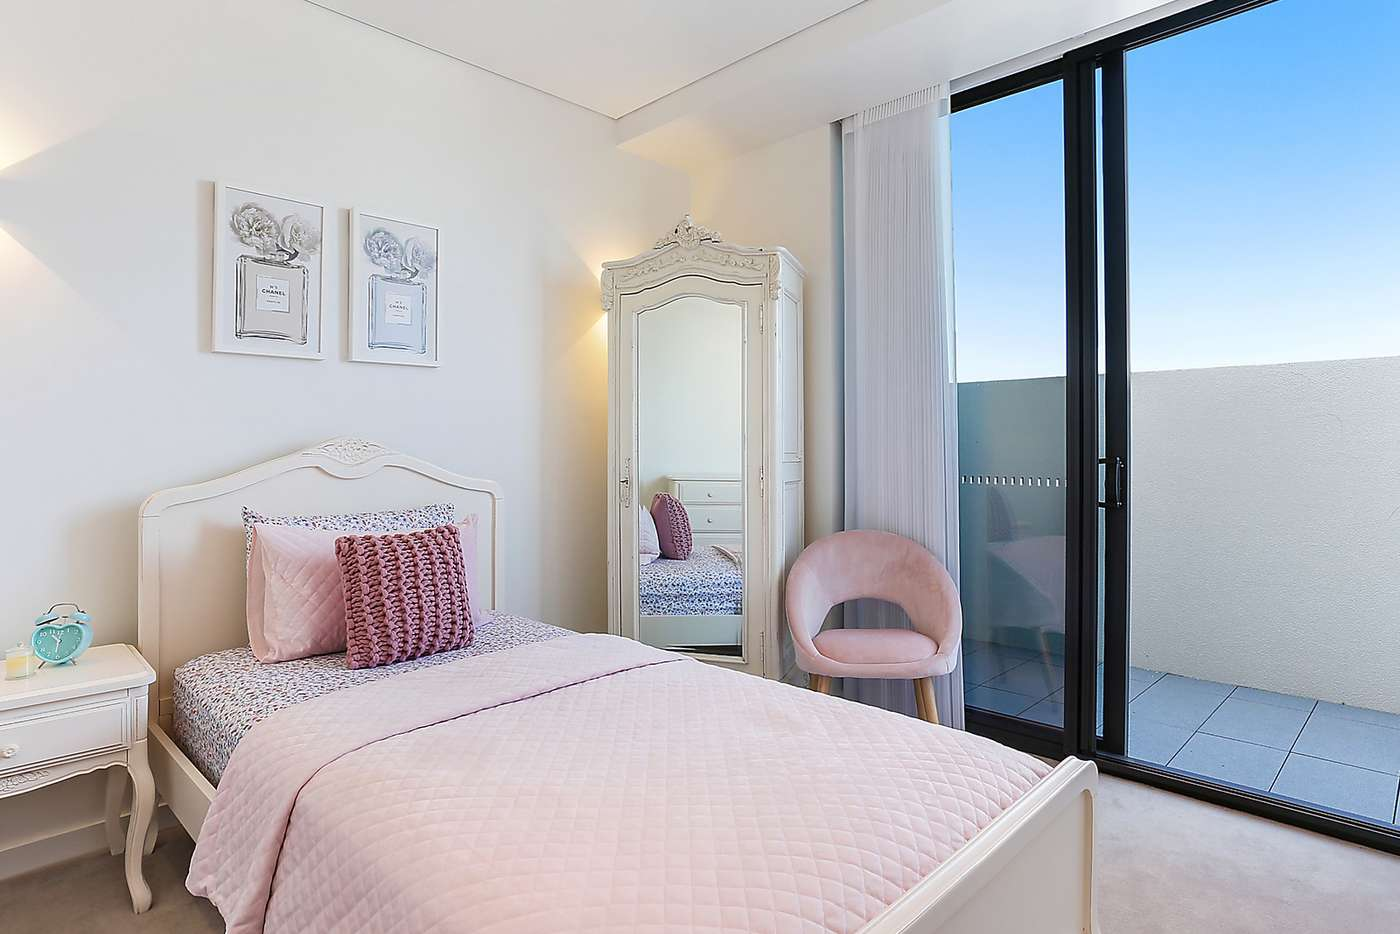 Sixth view of Homely apartment listing, 2805/45 Macquarie Street, Parramatta NSW 2150